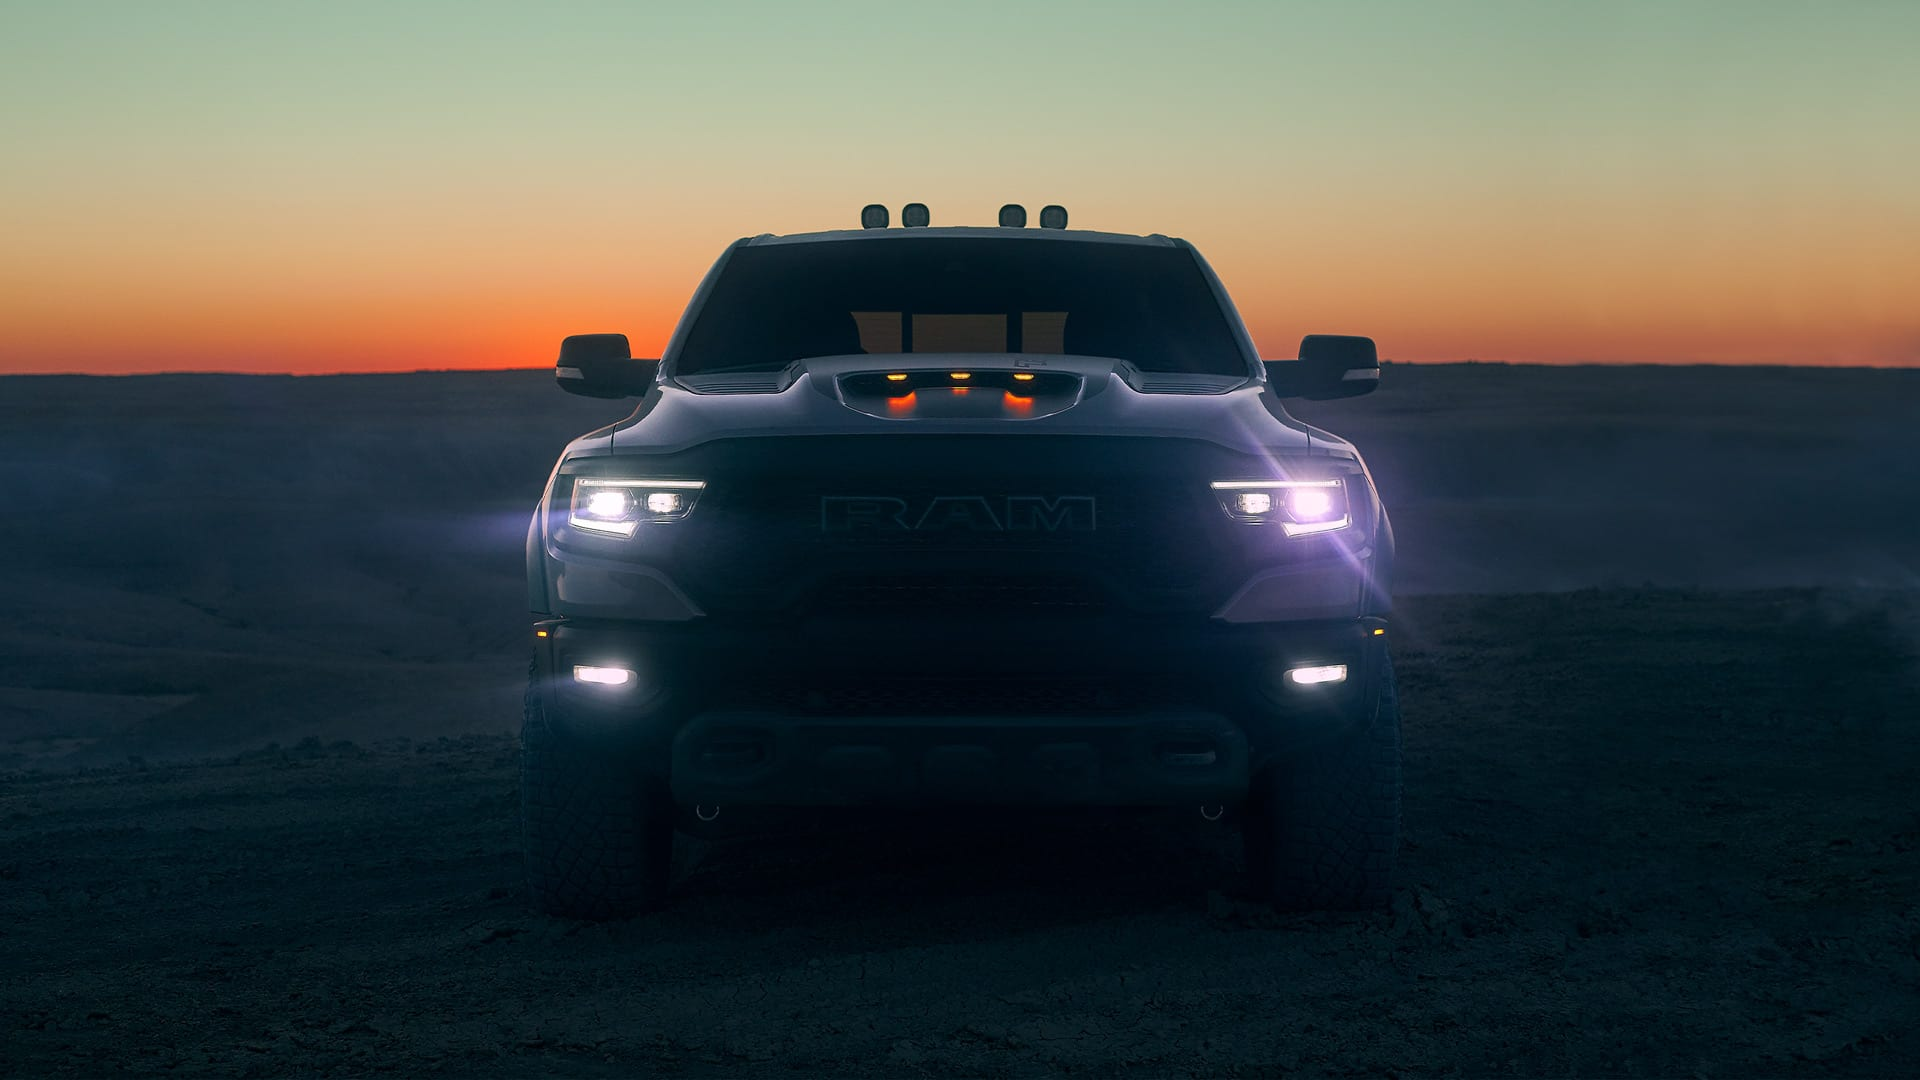 Display A head-on view of the 2021 Ram 1500 TRX at sunset with its headlamps, high beams and fog lamps lit.